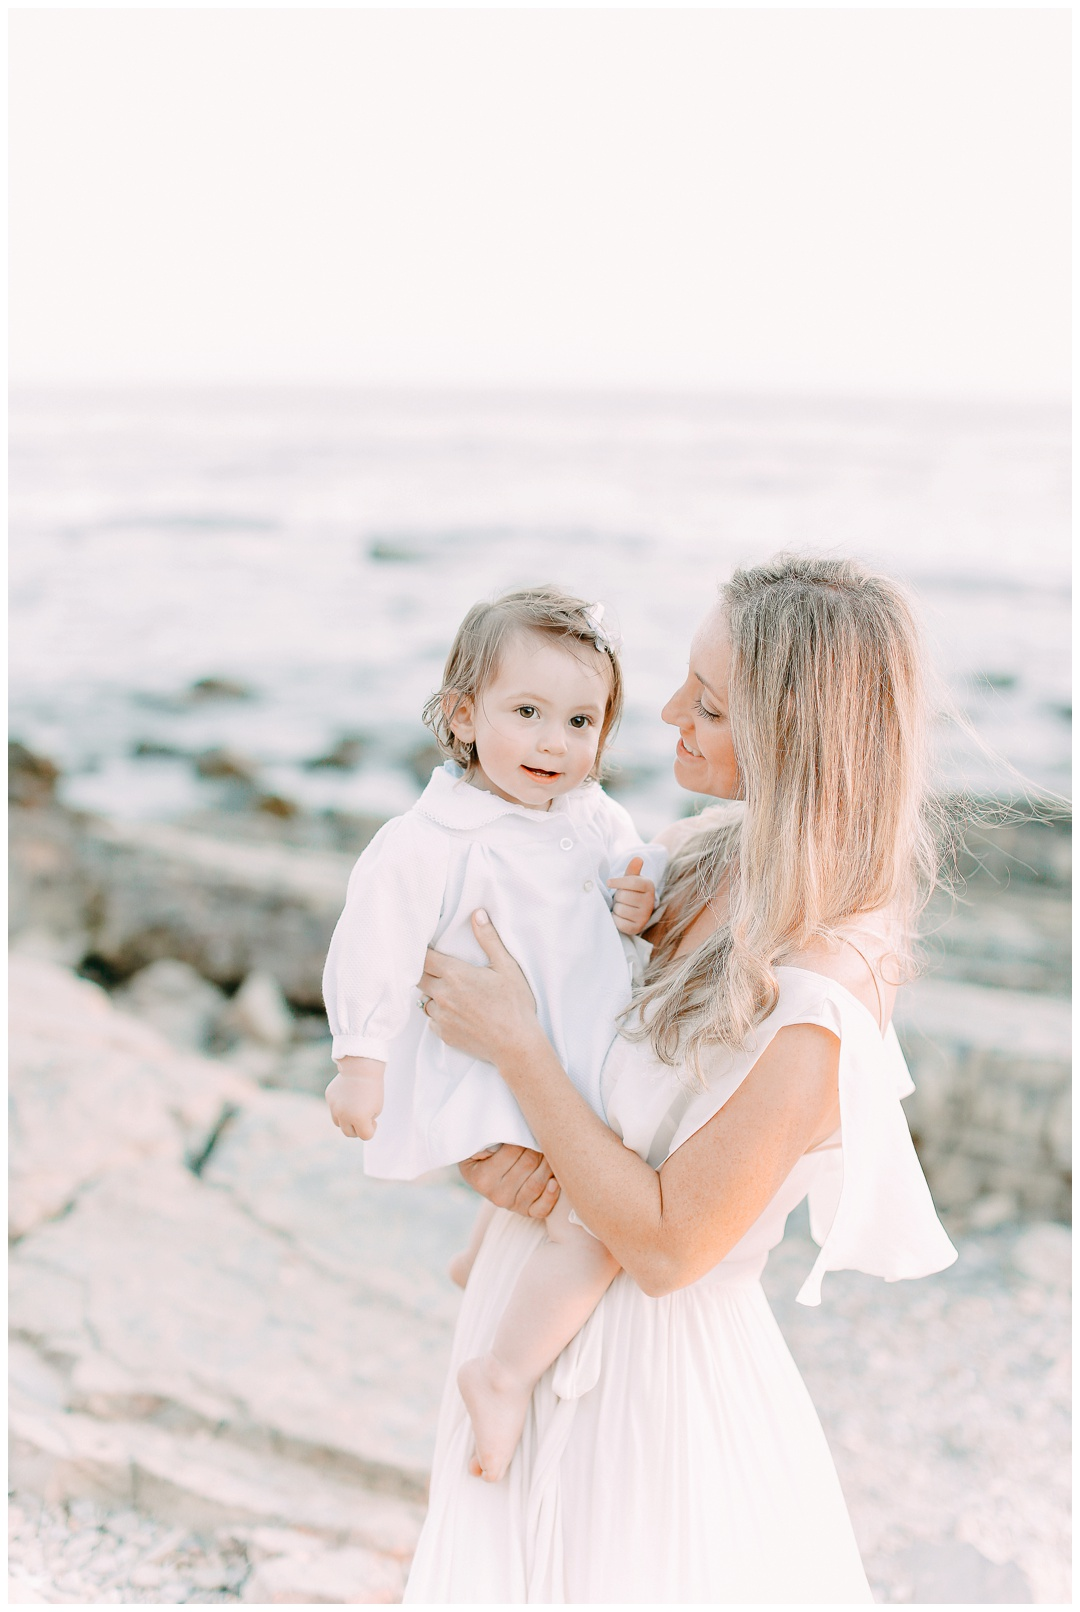 Newport_Beach_Maternity_Photographer_Orange_County_Maternity_Photography_Cori_Kleckner_Photography_Orange_County_Family_Photographer_Beach_Maternity_Session_1148.jpg